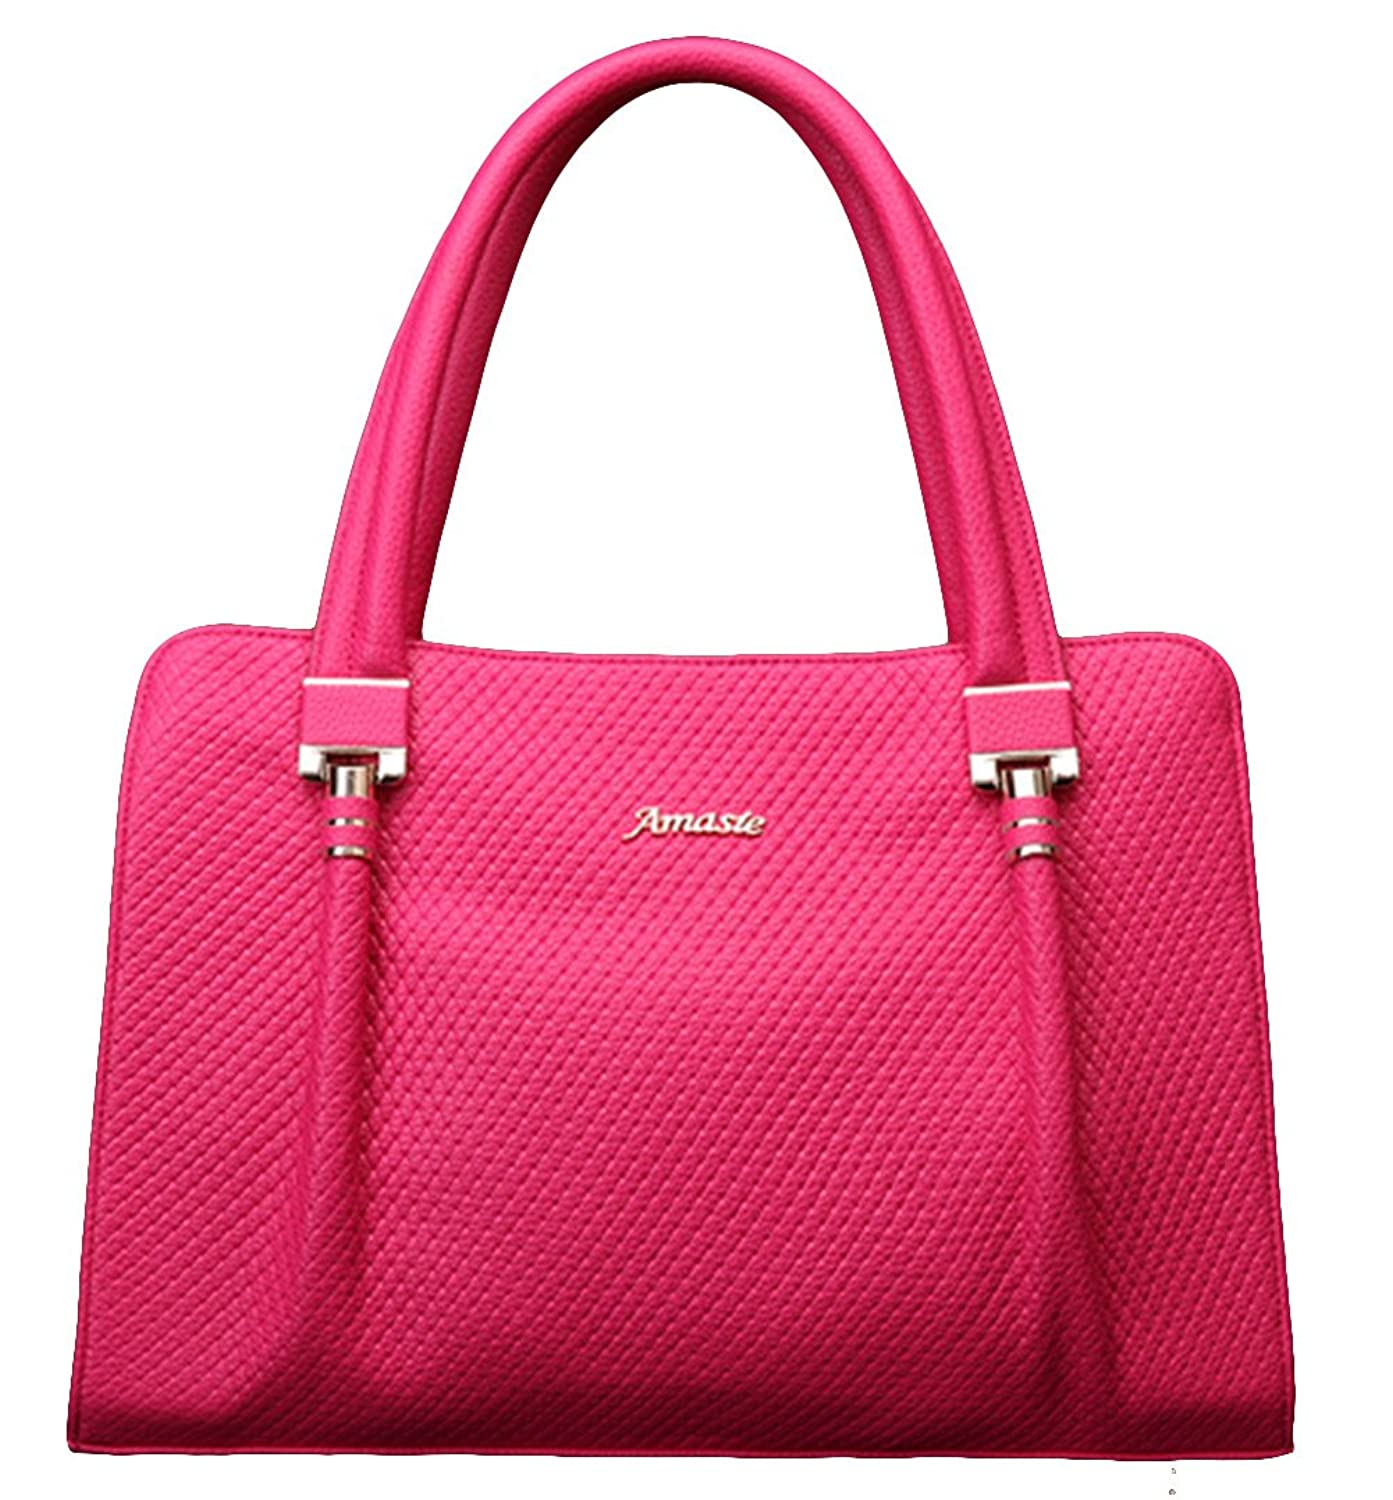 Chicside Women's Formal Tote Handbag Rose Red One Size